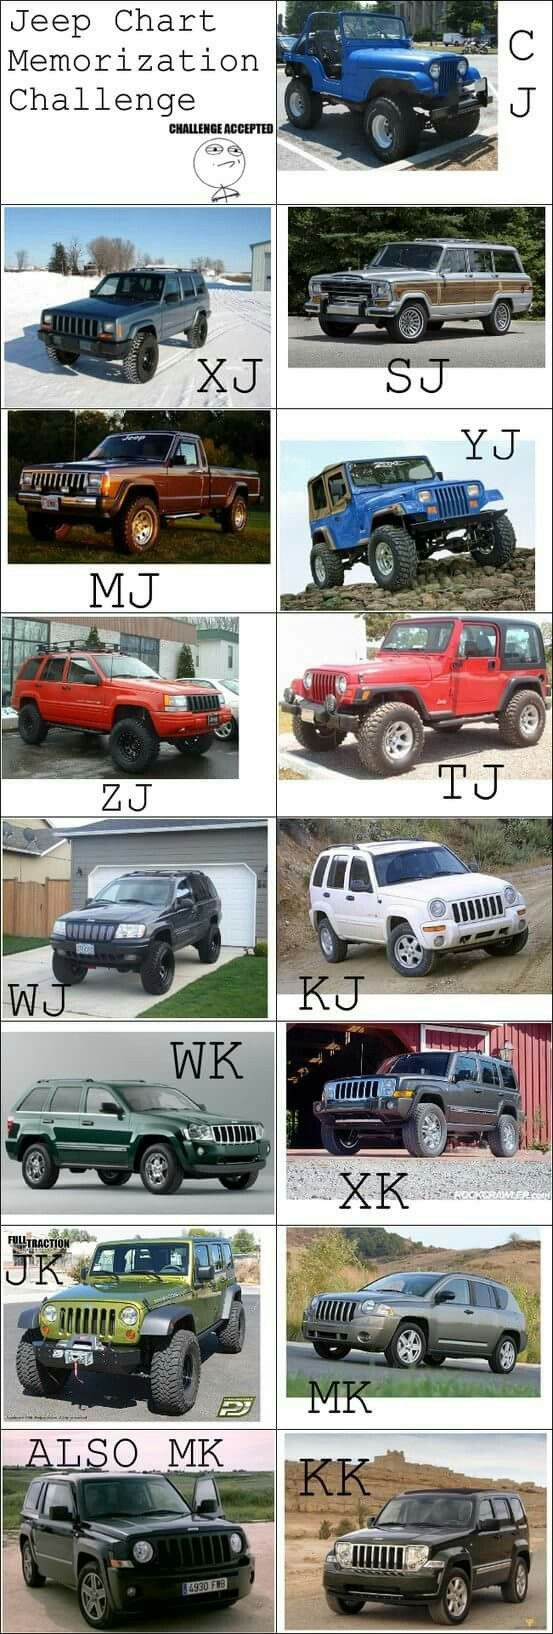 Jeep Quotes Best 25 Jeep Quotes Ideas On Pinterest  Jeep Wrangler Quotes